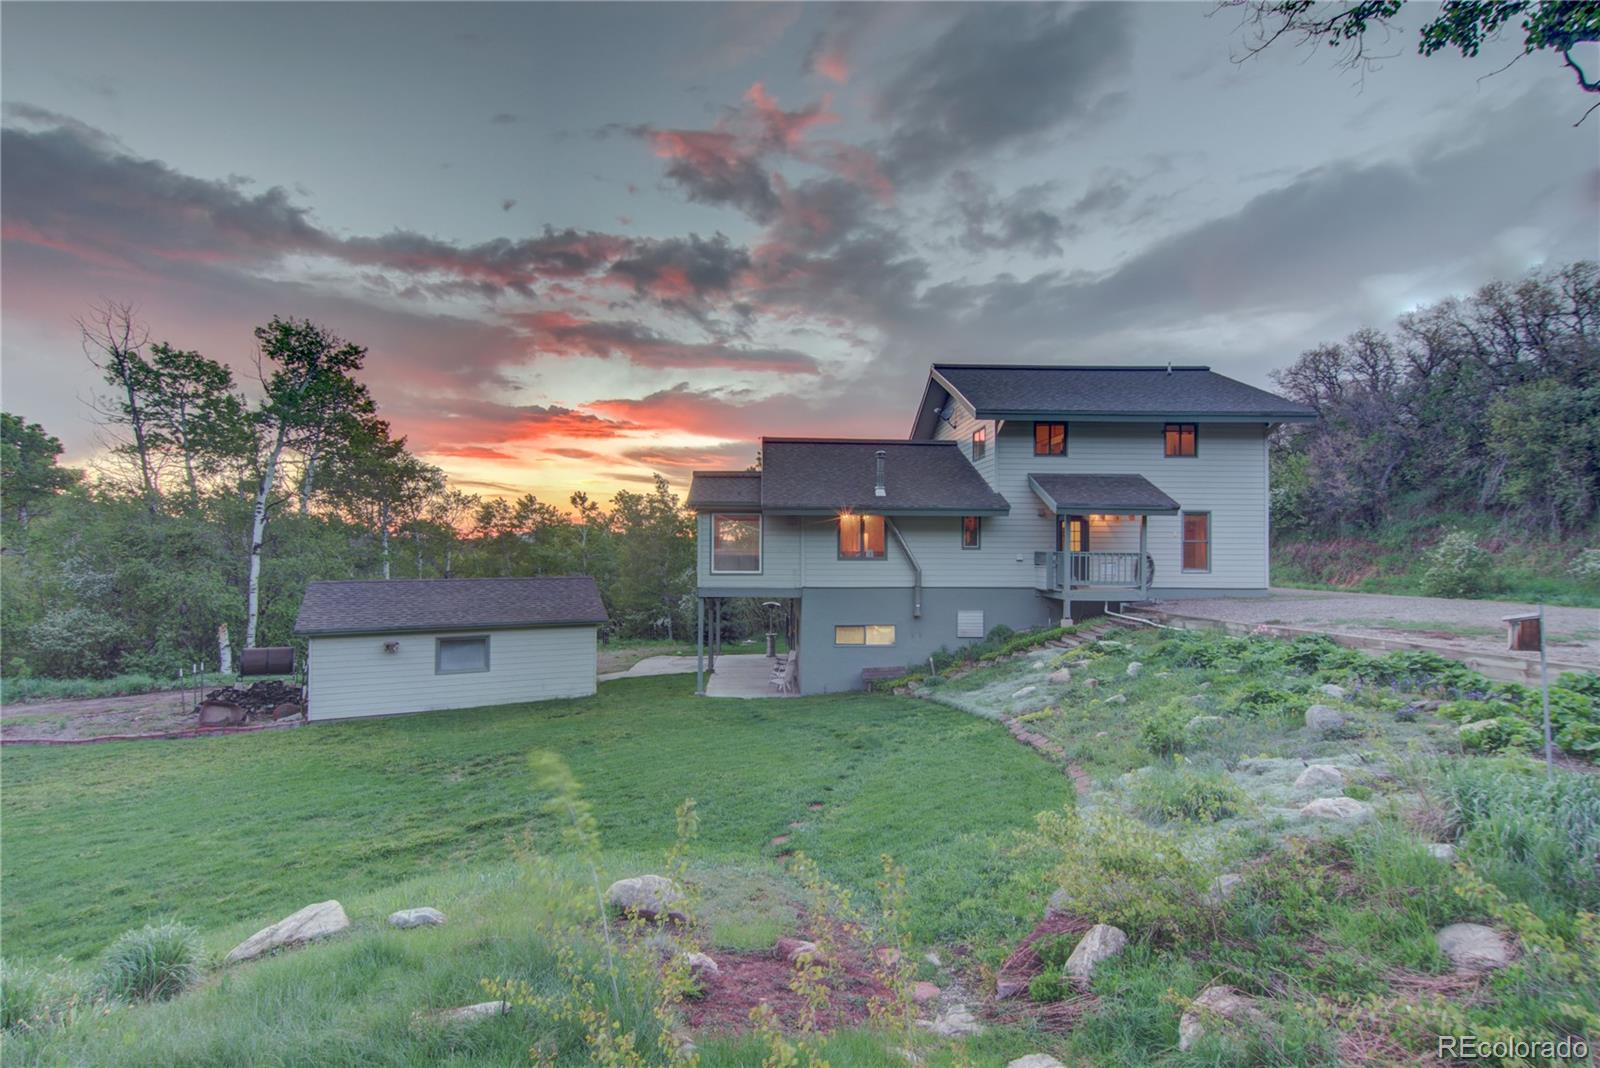 28295 Valley View Lane, Steamboat Springs, CO 80487 - Steamboat Springs, CO real estate listing